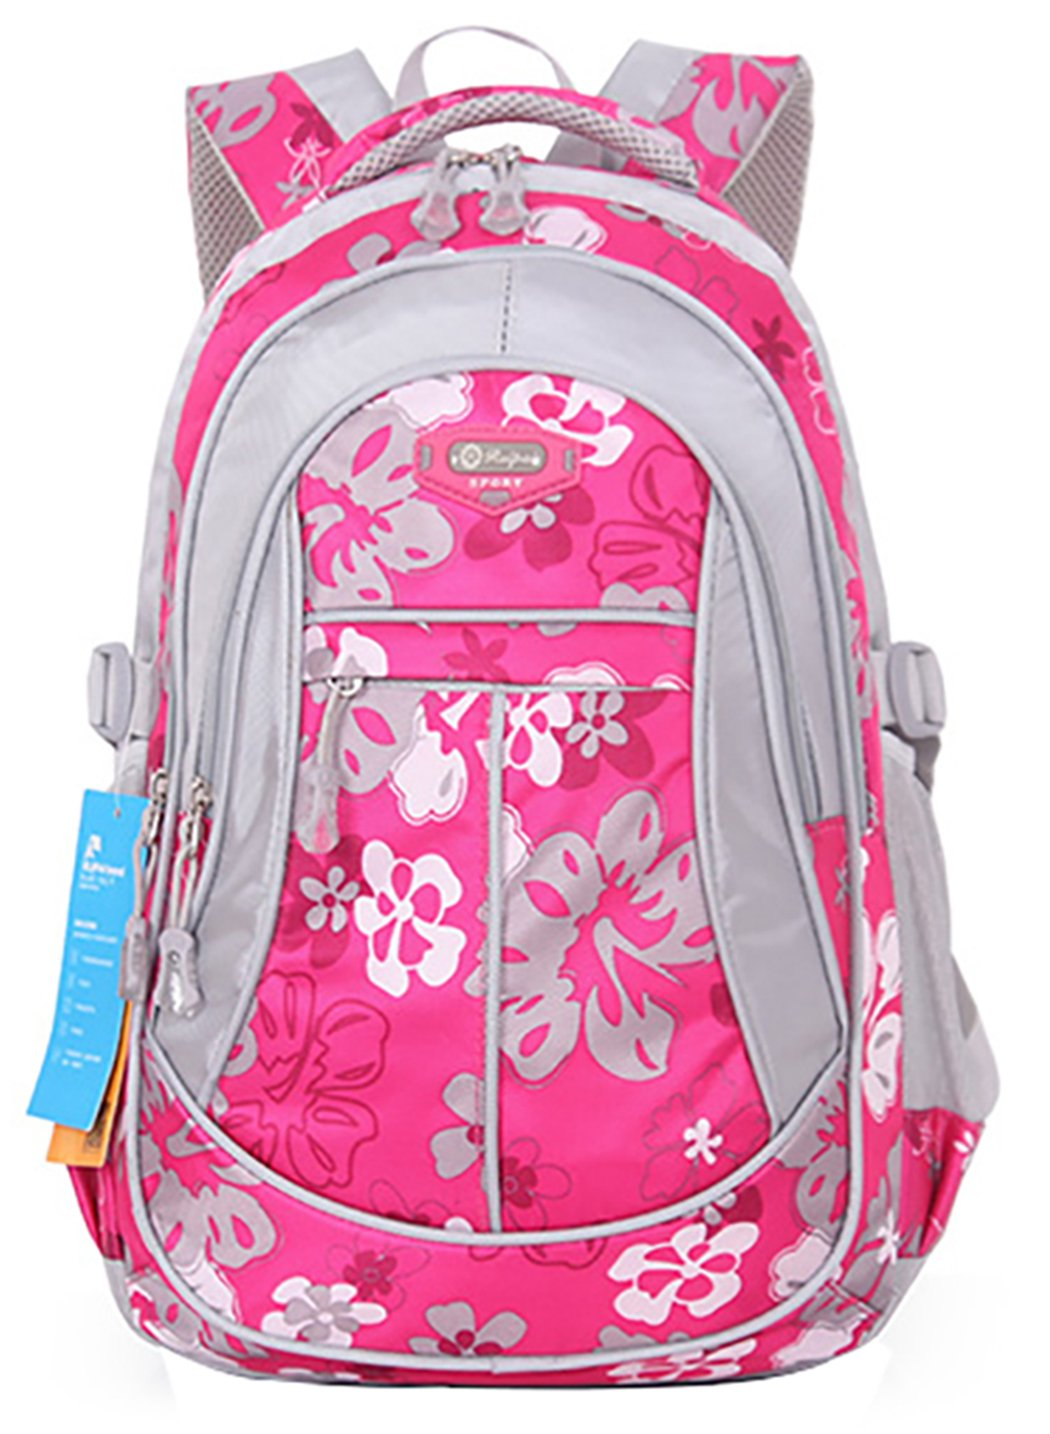 JiaYou Girl Flower Printed Primary Junior High University School Bag Bookbag Backpack Style A Rose 24 Liters